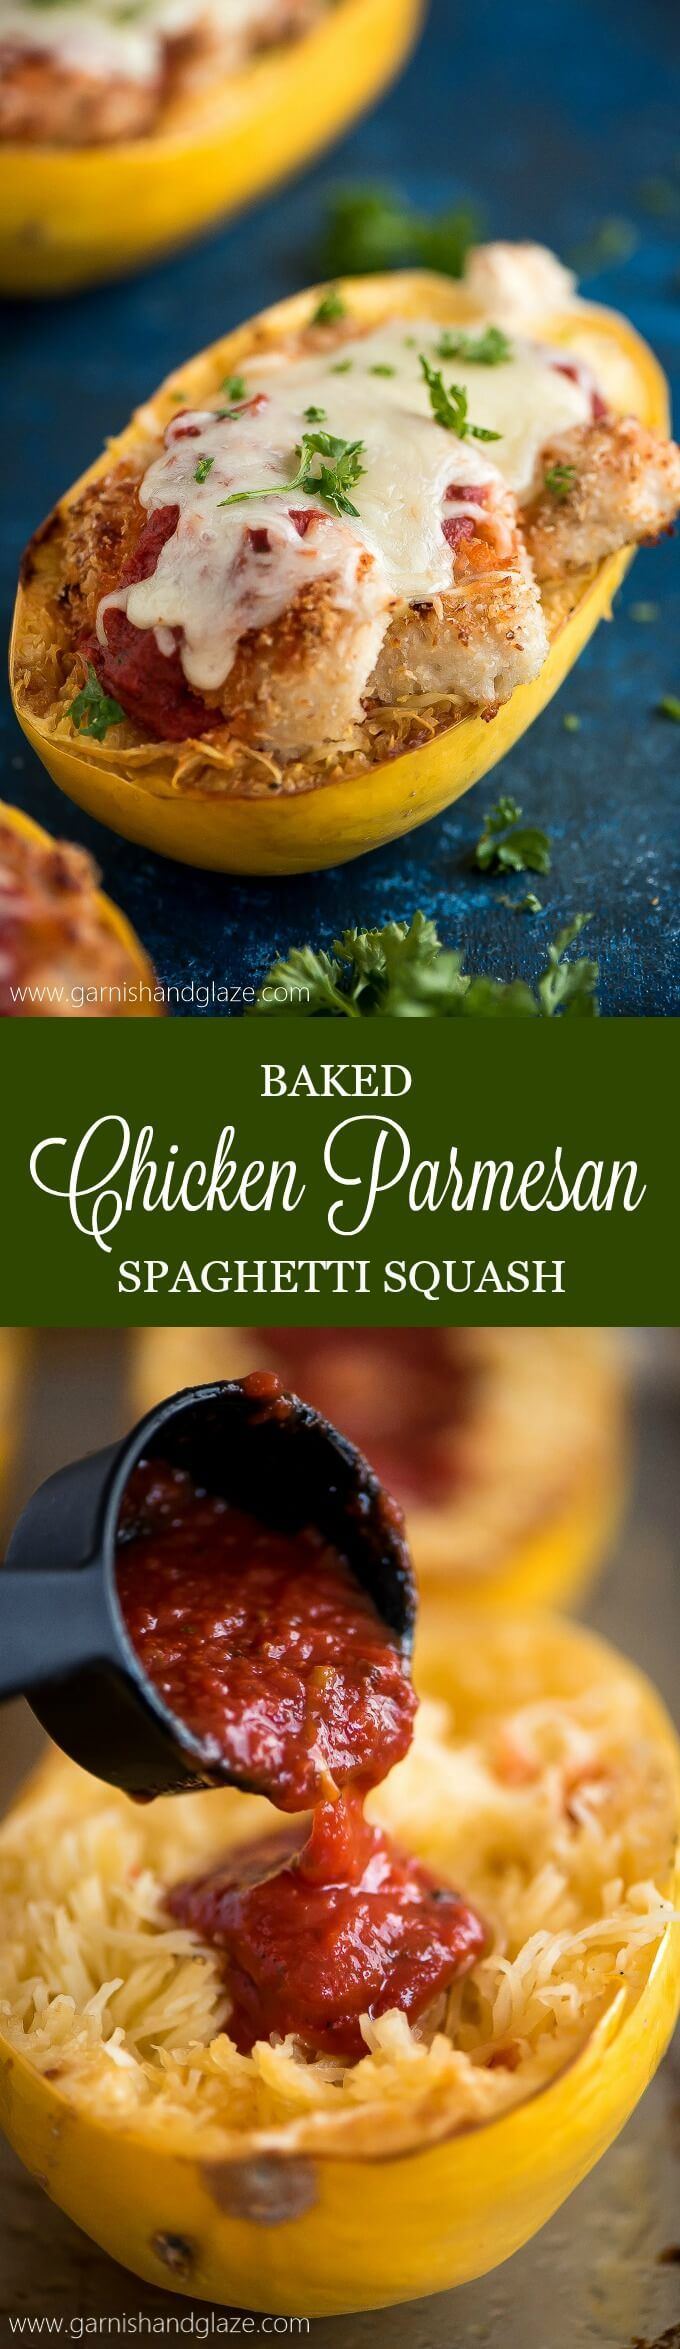 Make a smart swap and cook up some Baked Chicken Parmesan Spaghetti Squash for a healthier dinner with the same great taste and crispy texture. Repin for a chance to see a similar meal in your freezer aisle @smartmade0201 @AOL_Lifestyle #ad SmartMade Inspired By You